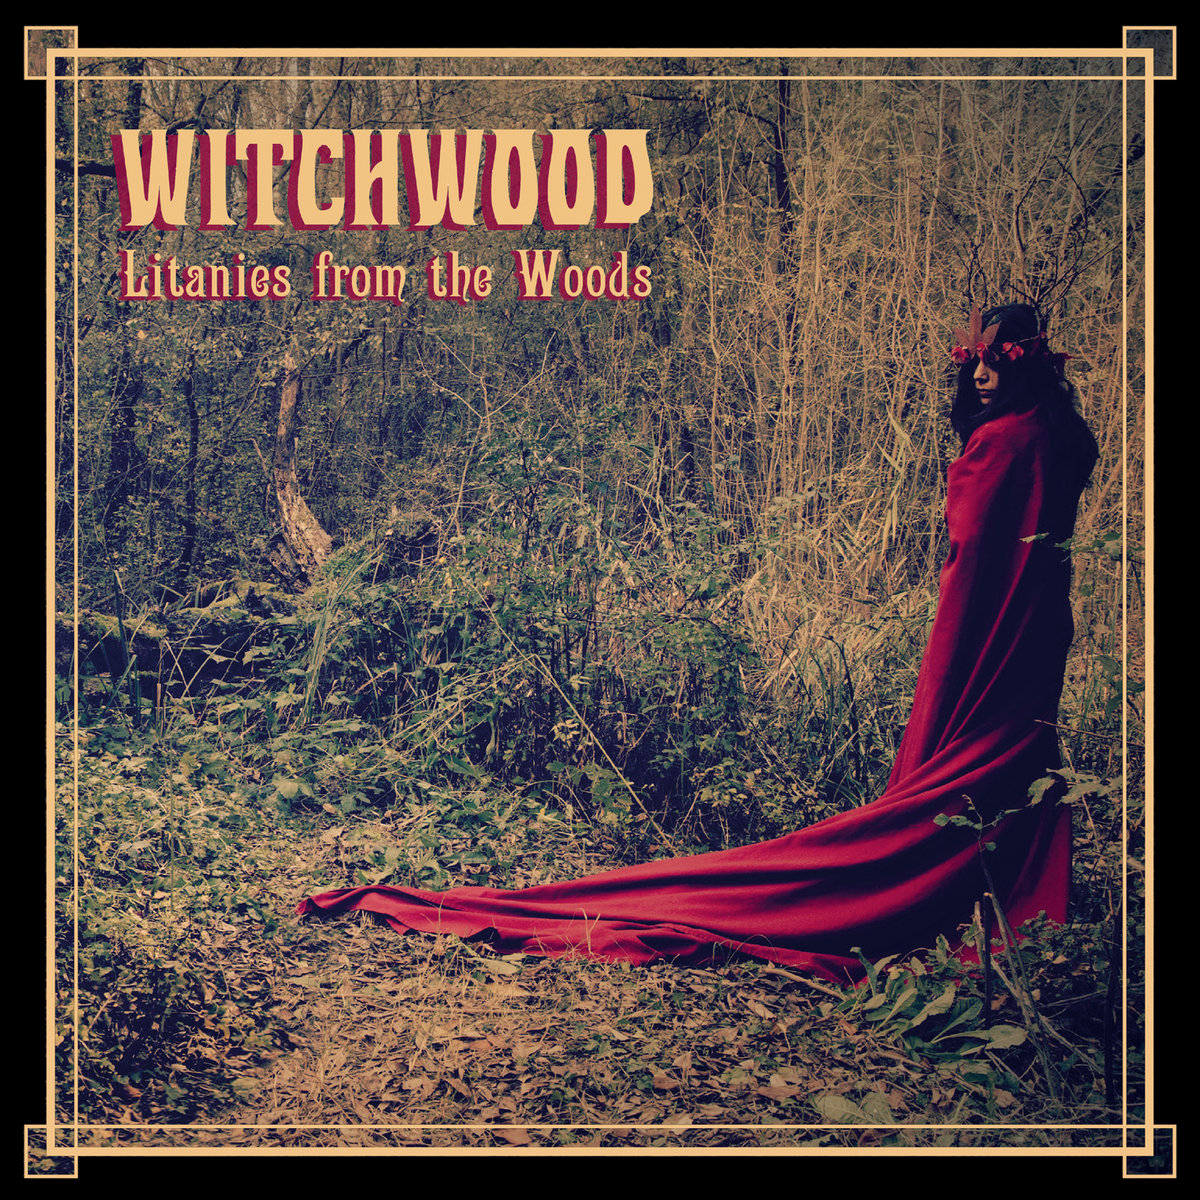 Witchwood: Litanies from the Woods